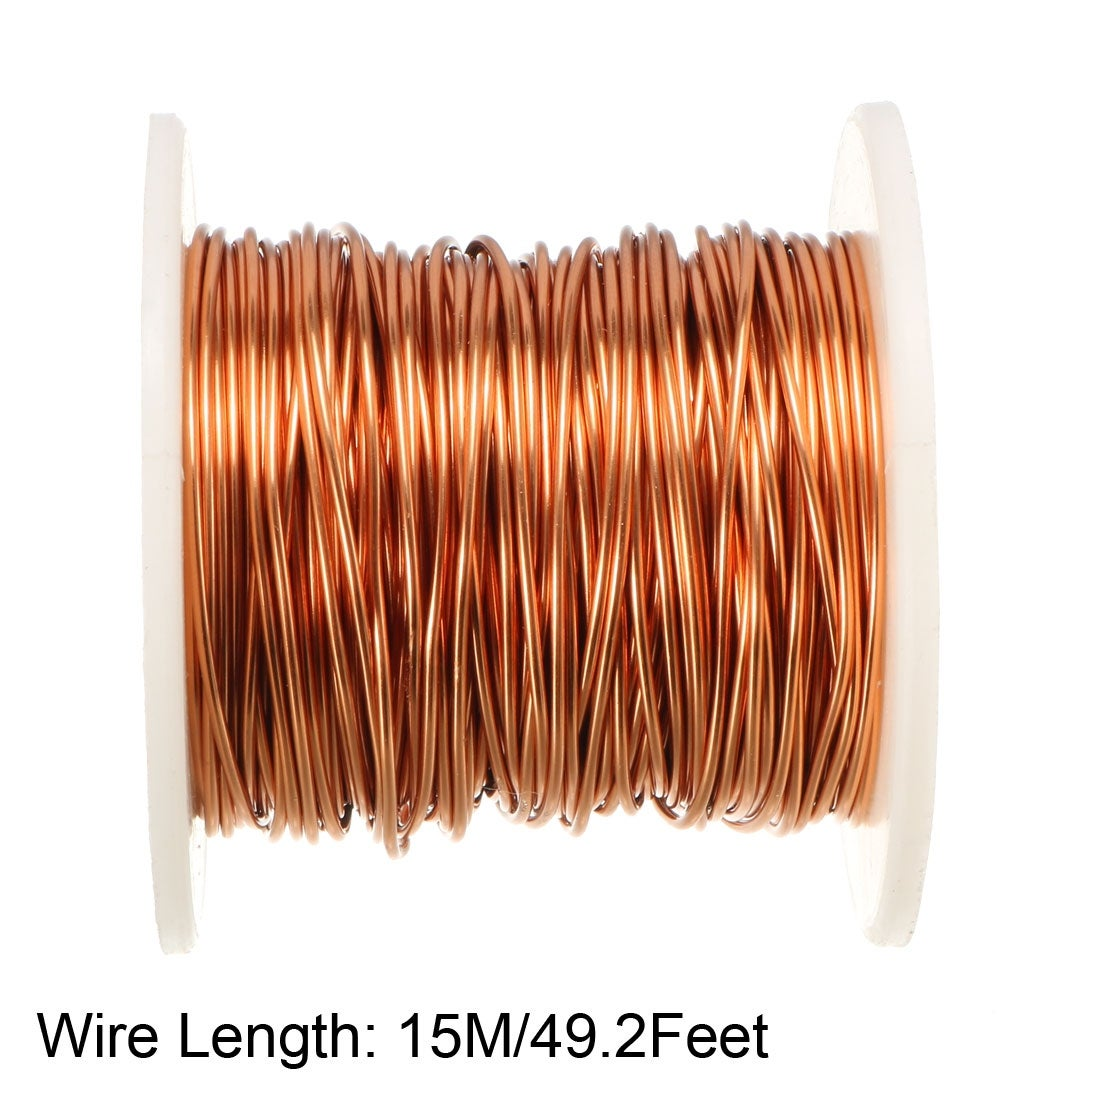 2 oz Magnet Wire 19 AWG Heavy Build Enameled Copper Wire Red 31 Length 0.0386 Diameter